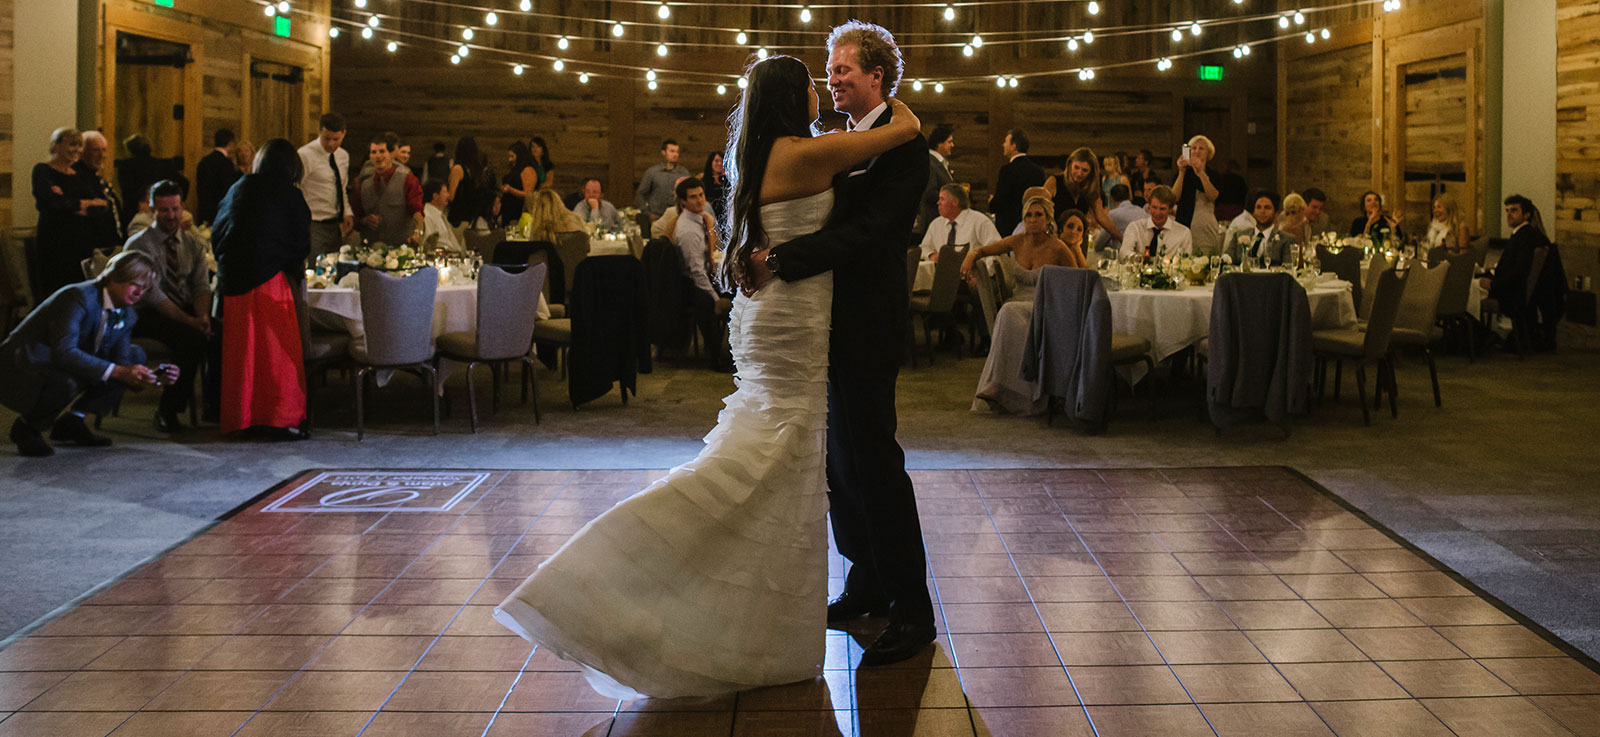 First dance at a wedding on a teak portable dance floor.